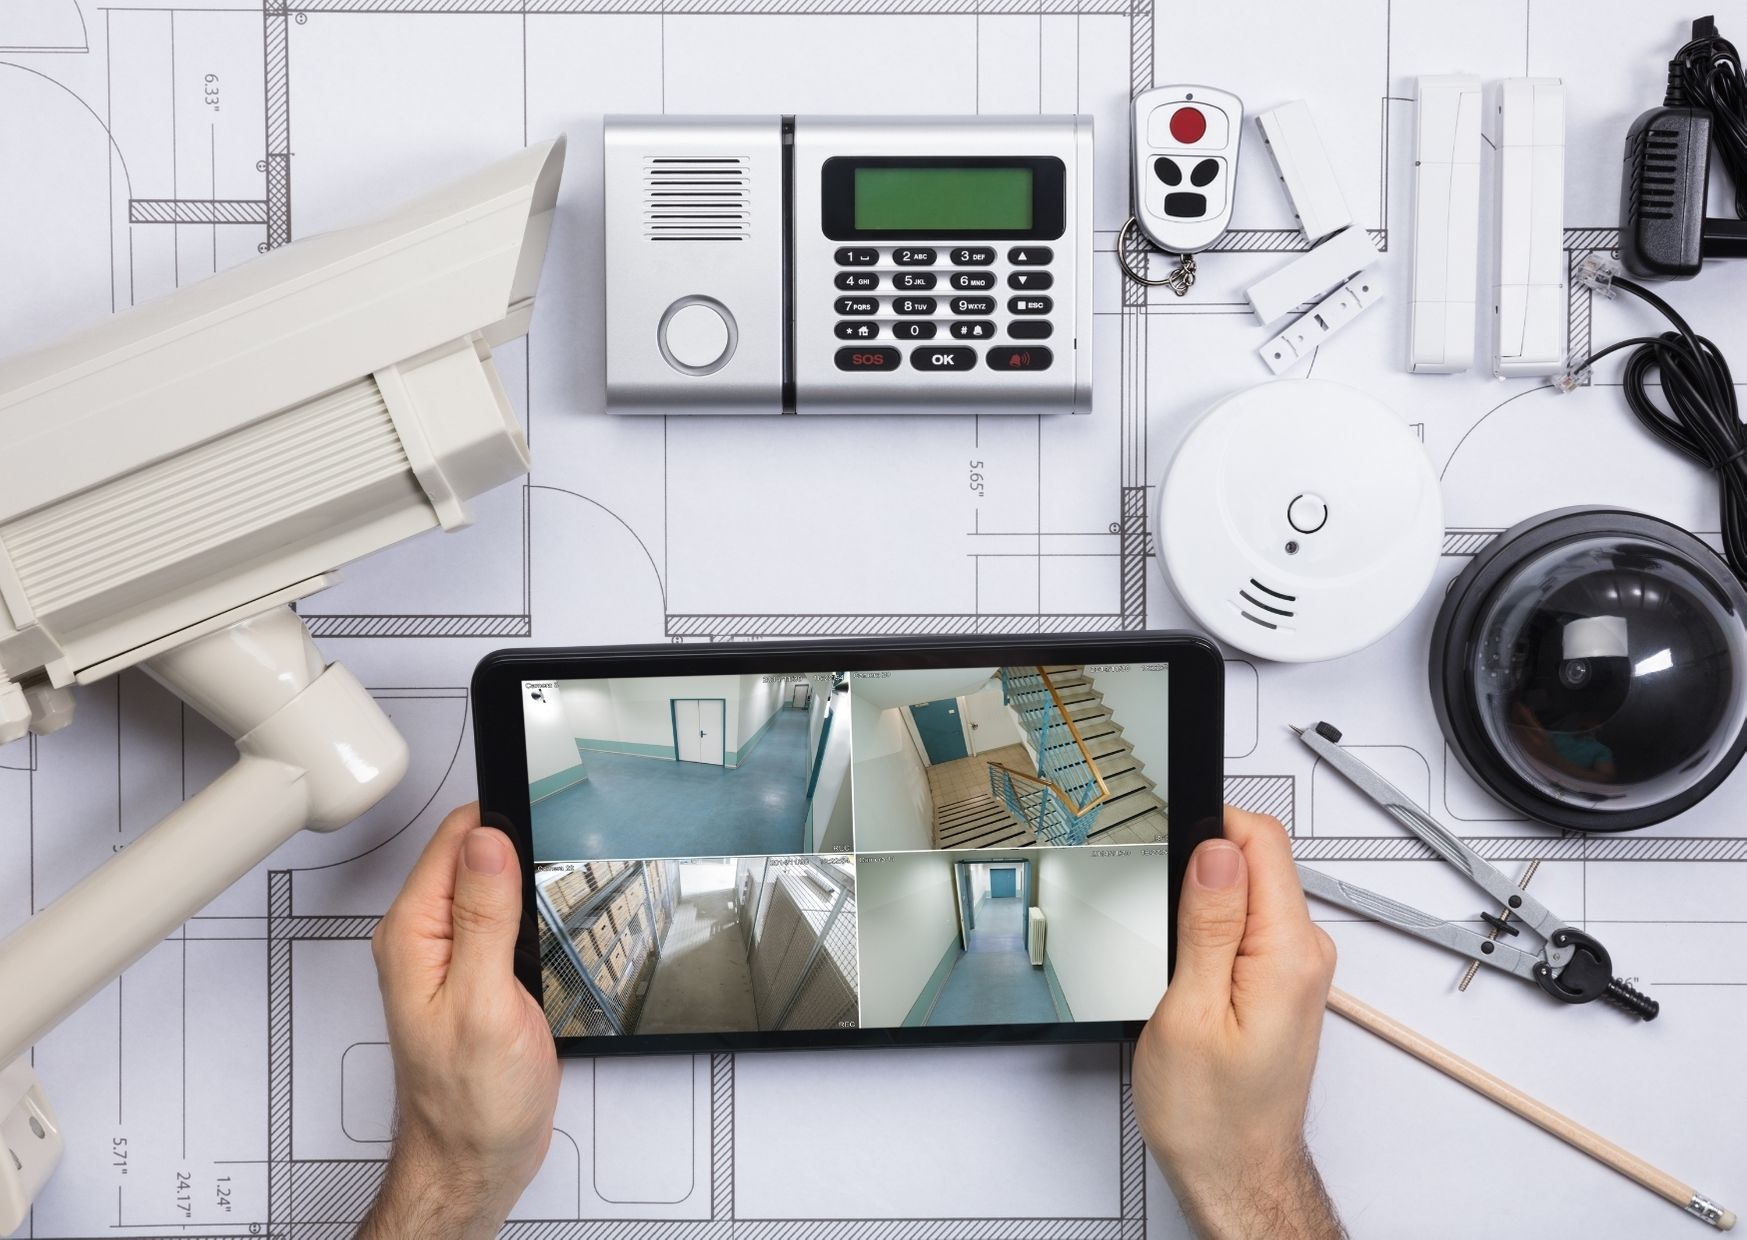 Home Safety- Benefits Of Installing Security Systems